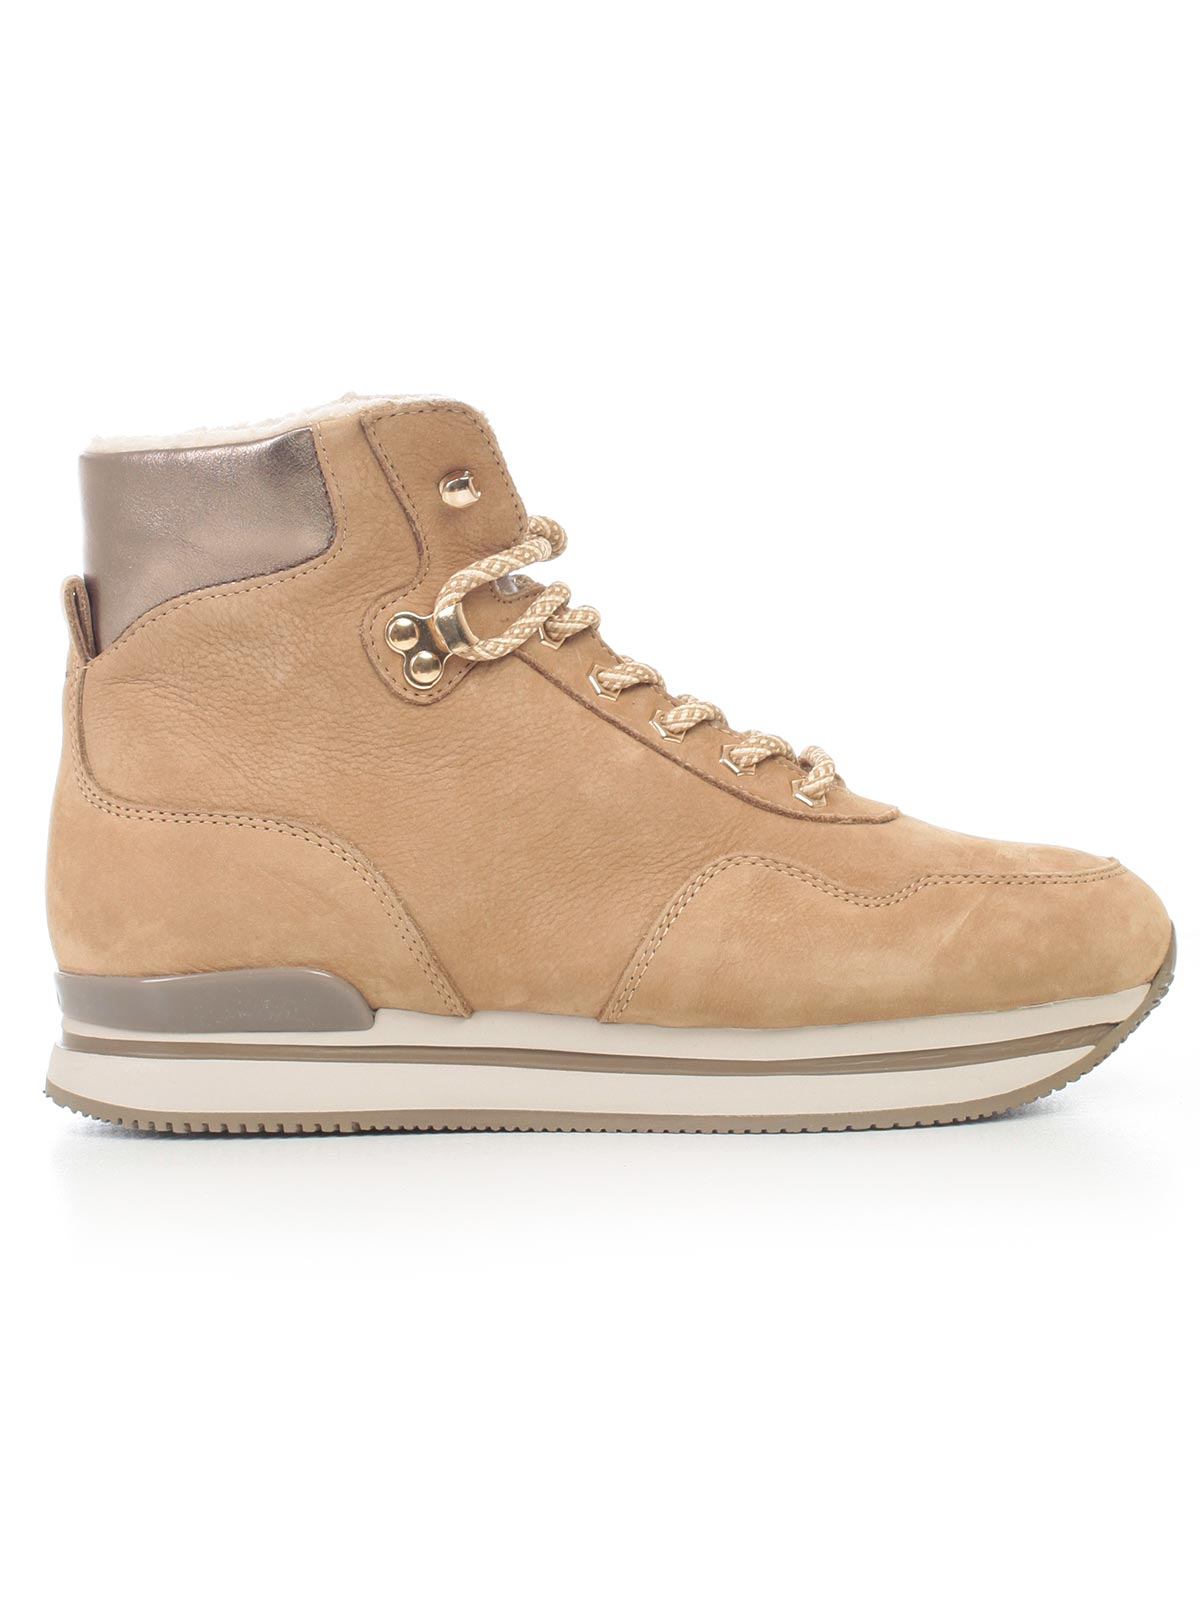 363ec7fc6678b Hogan Shoes HXW2220AP80GI80ZVA - BISCOTTO MEDIO.Bernardelli Store - Online  fashion store for Men and Women